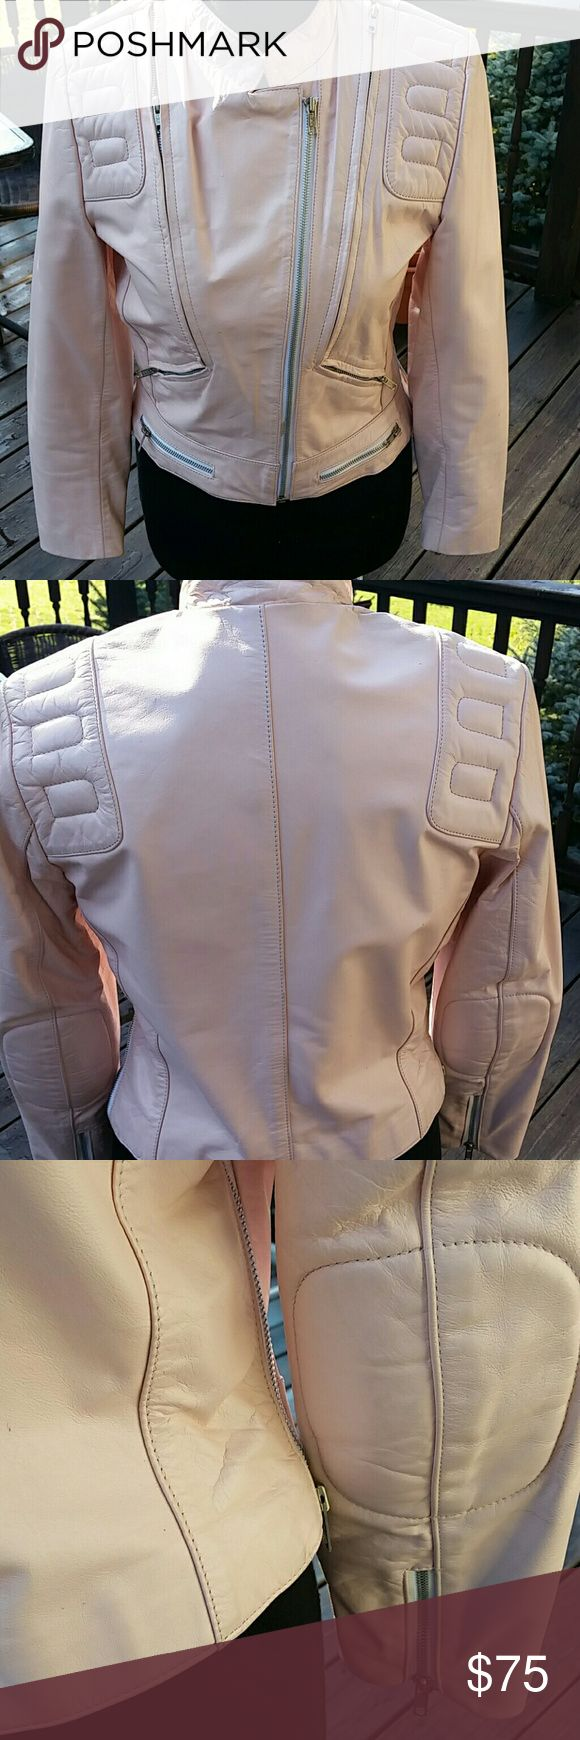 Pink leather motor jacket Soft pink leather moto  jacket w asymmetrical front zipper.  Padded elbows, zippers on arms,  venting side zippers and expandable zippers.   Really cute and hot looking!  Full disclosure - stain on the inside, left side under arm. speciale mode Jackets & Coats Utility Jackets